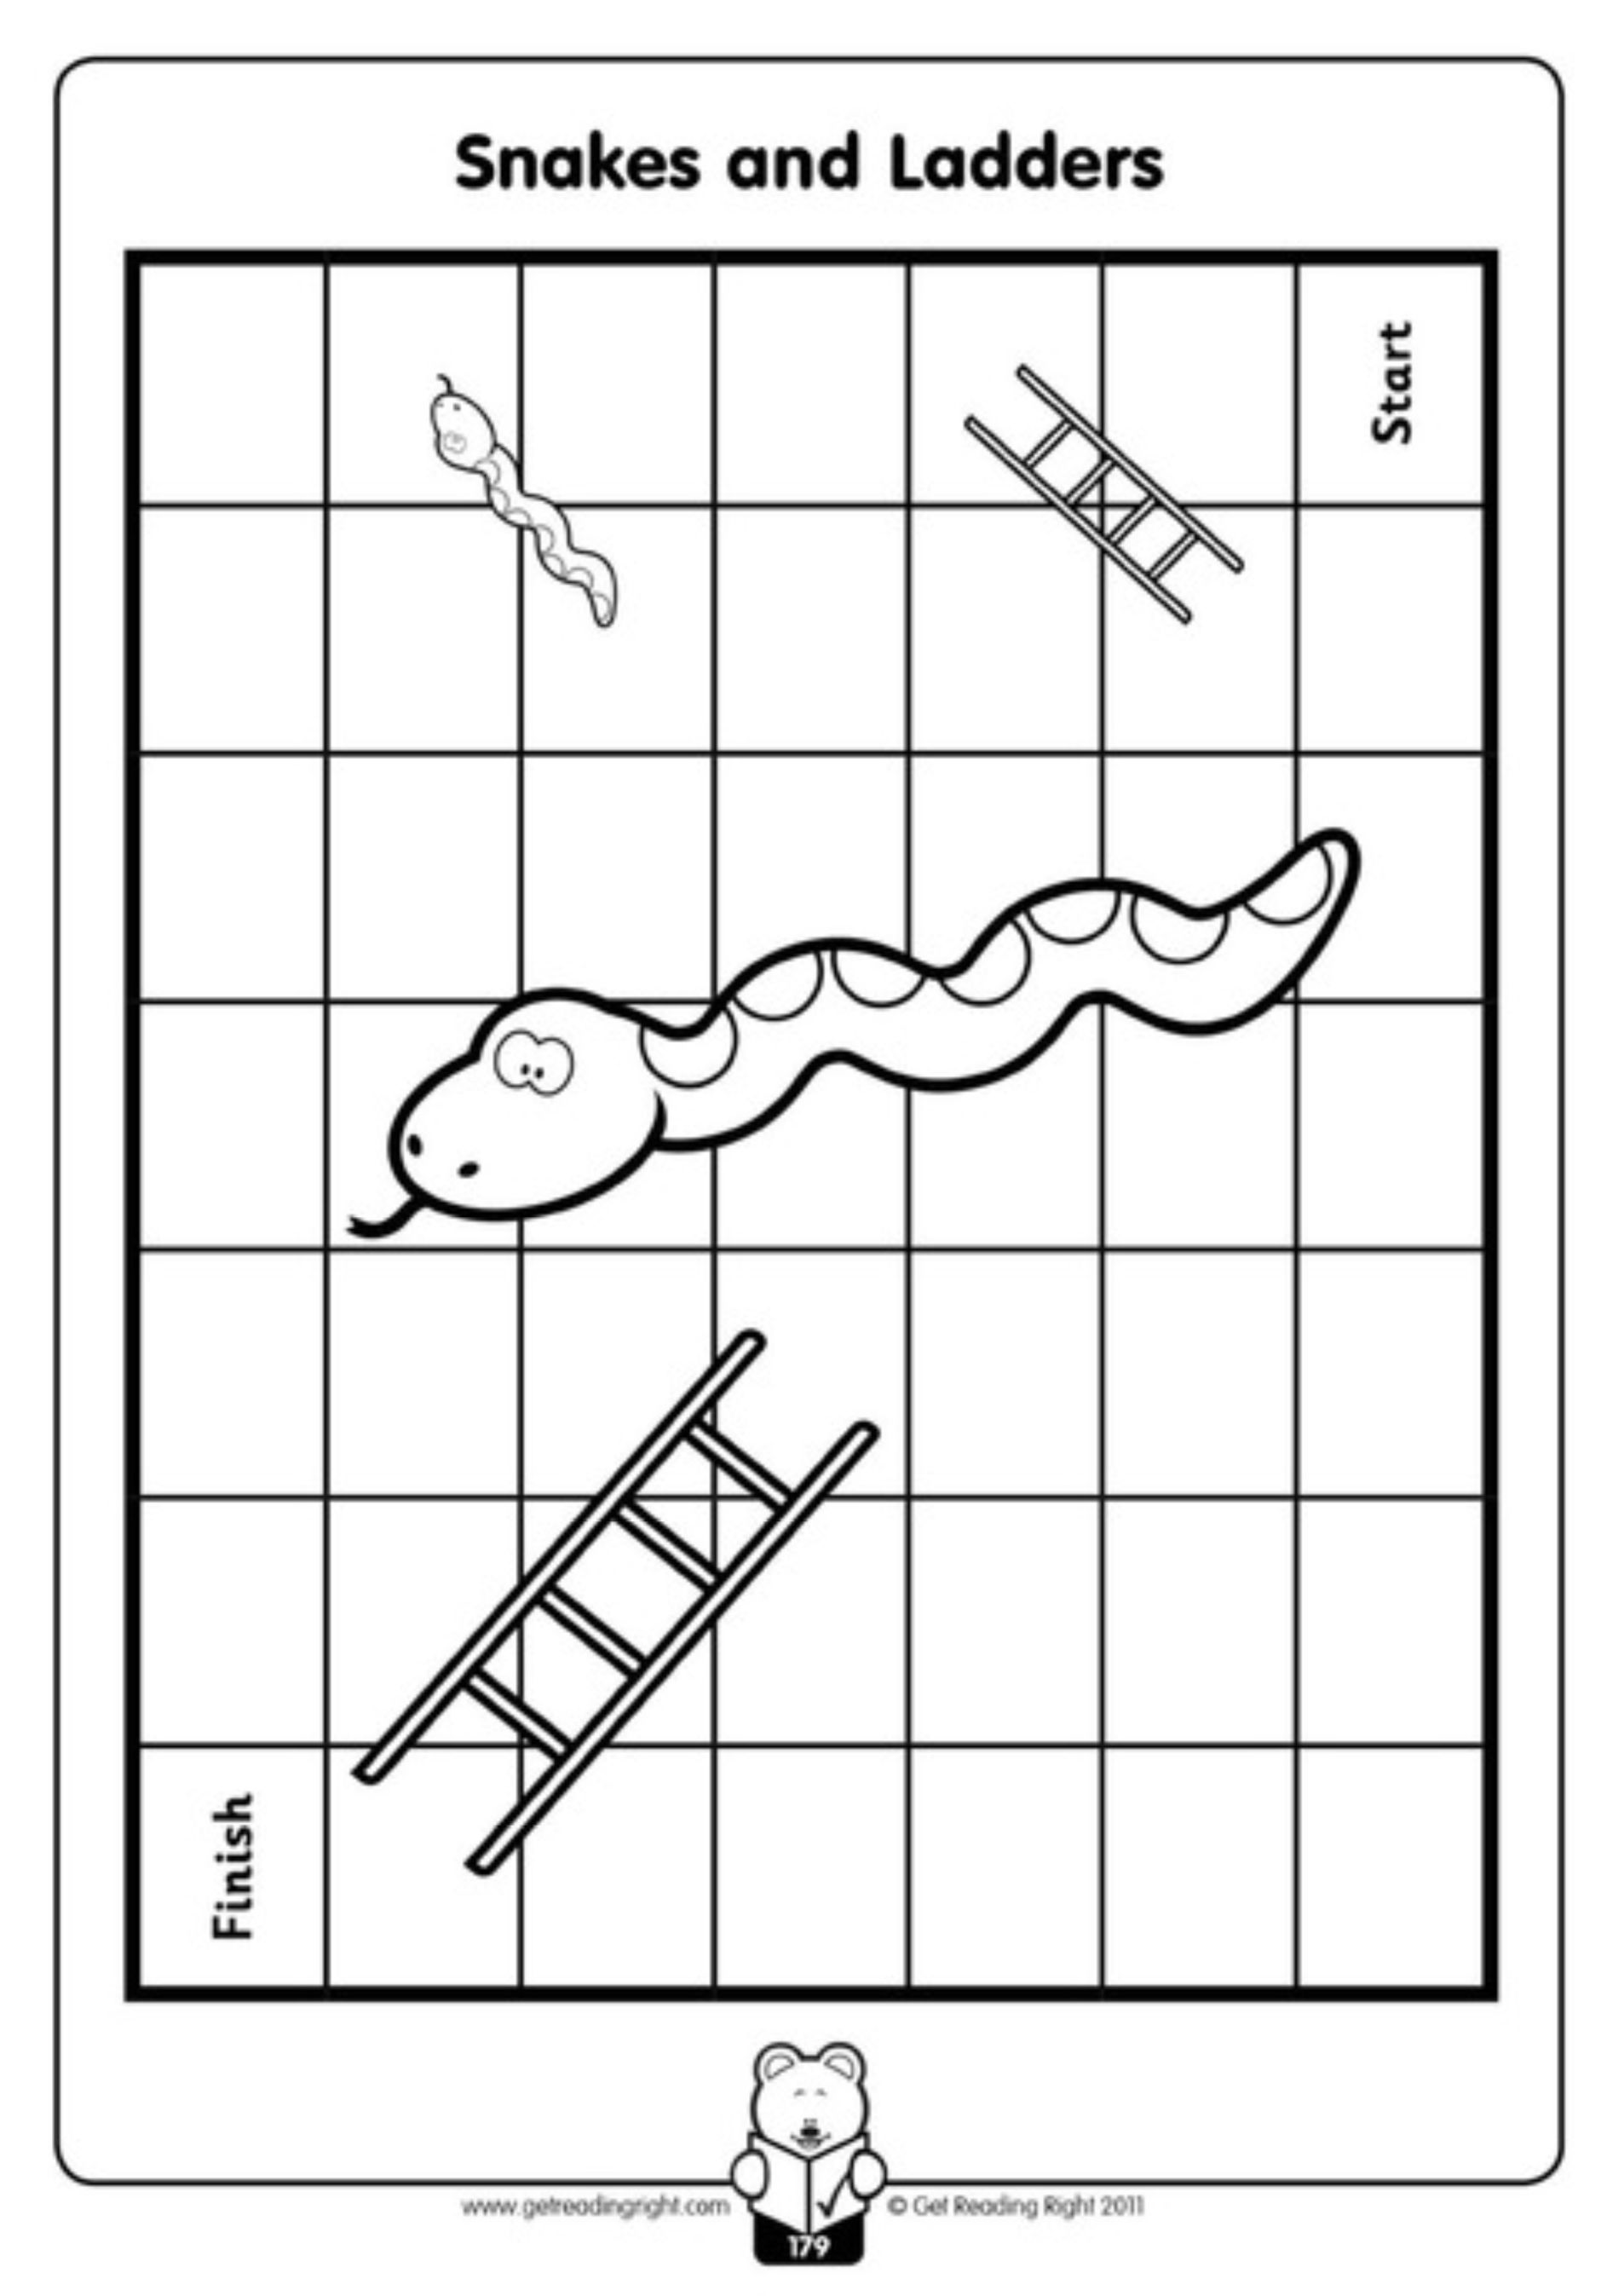 snakes and ladders printable snakes and ladders board game reading group activities printable snakes and ladders